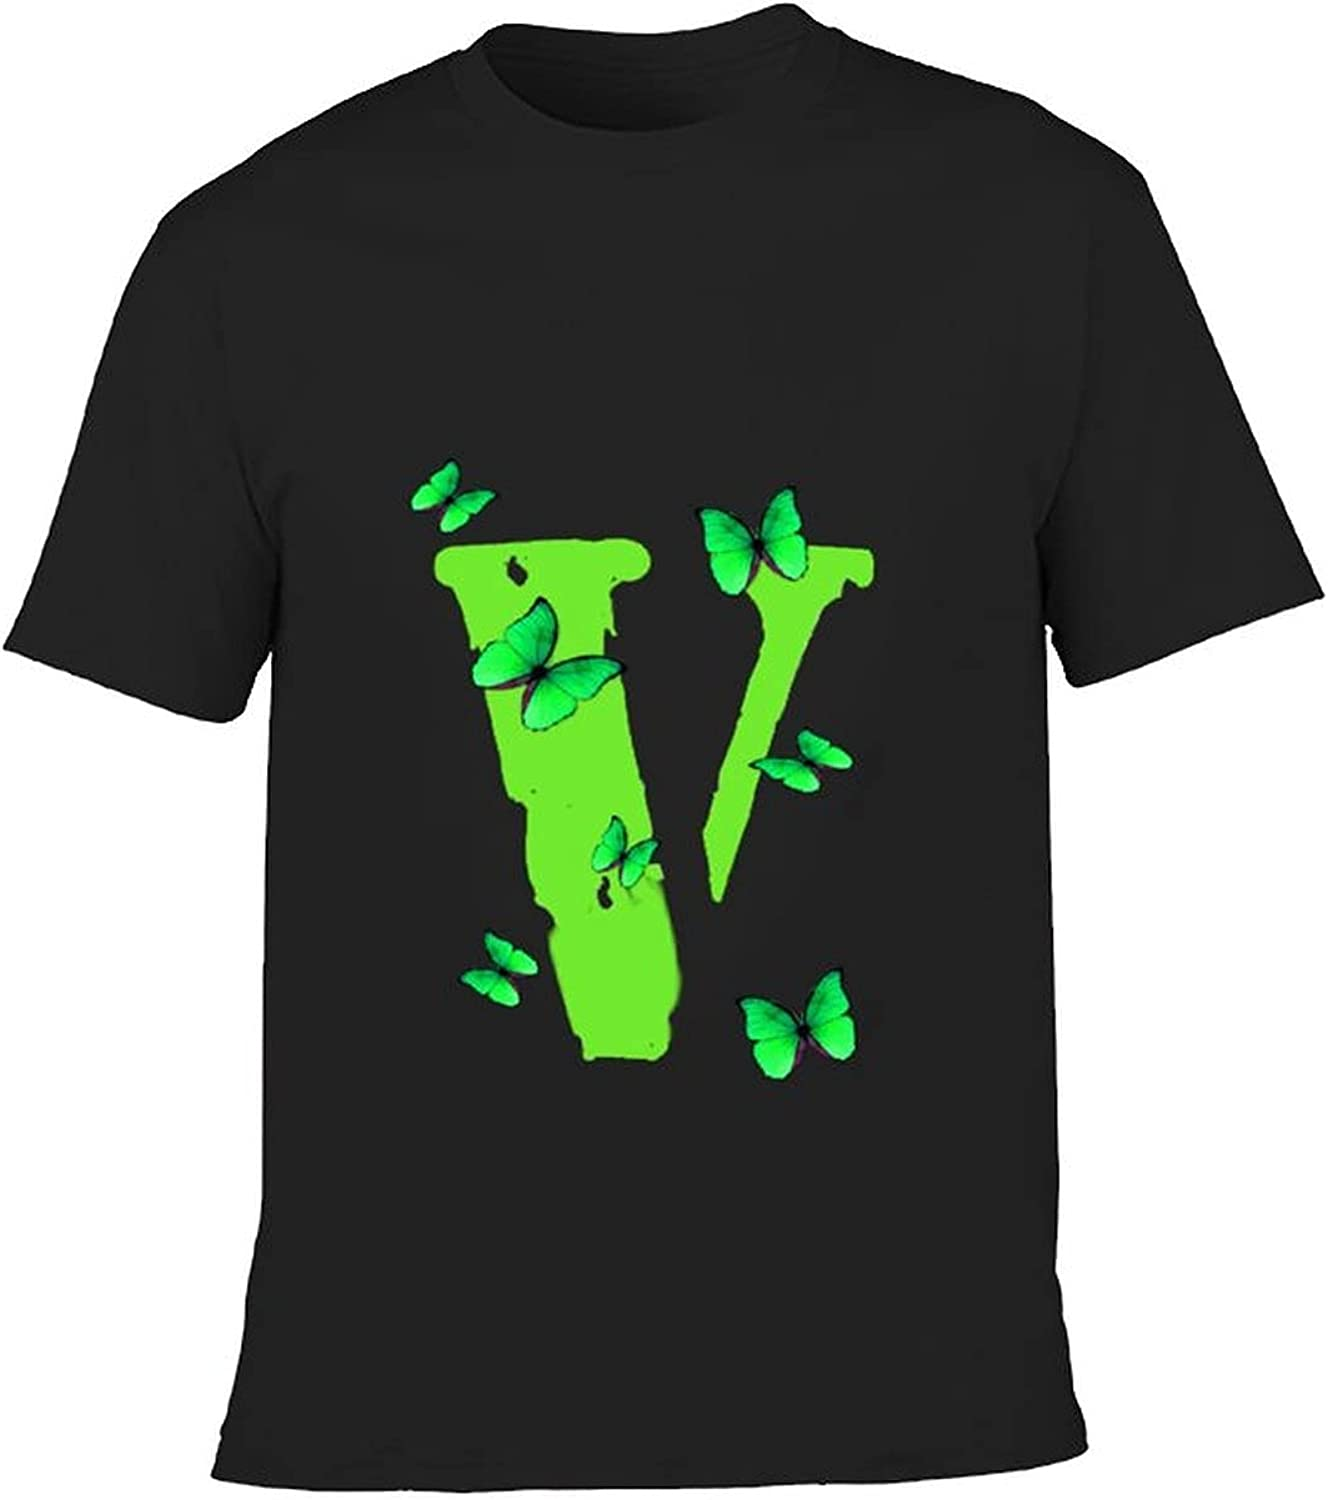 Vlone Big V Kid's Casual Graphic Round Neck Short Sleeve T-Shirt Cozy Trendy Cotton Tee Shirts Tops for Boys Girl